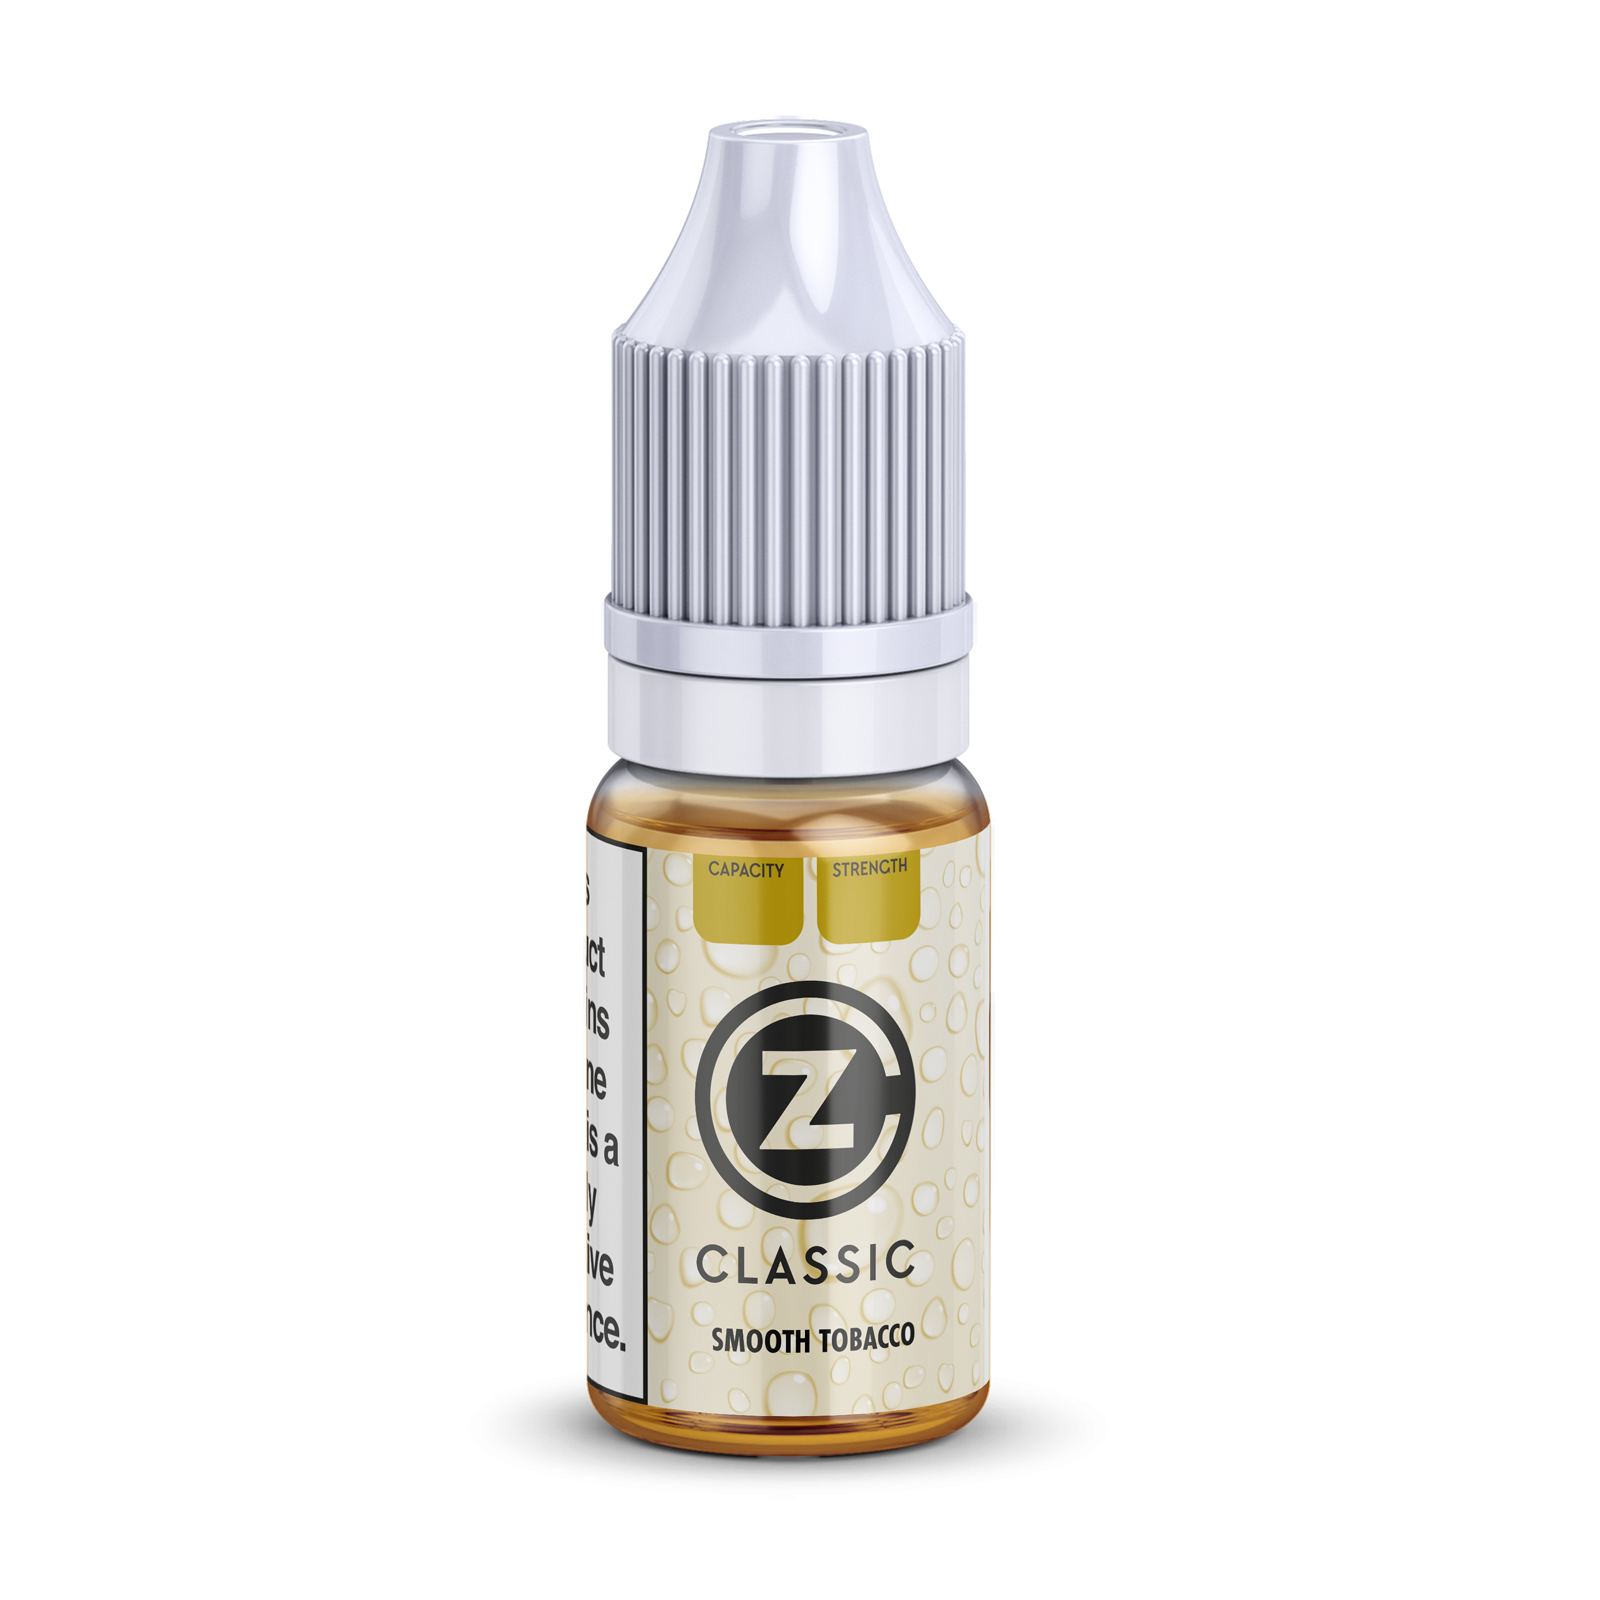 Ziggicig Classic Smooth Tobacco